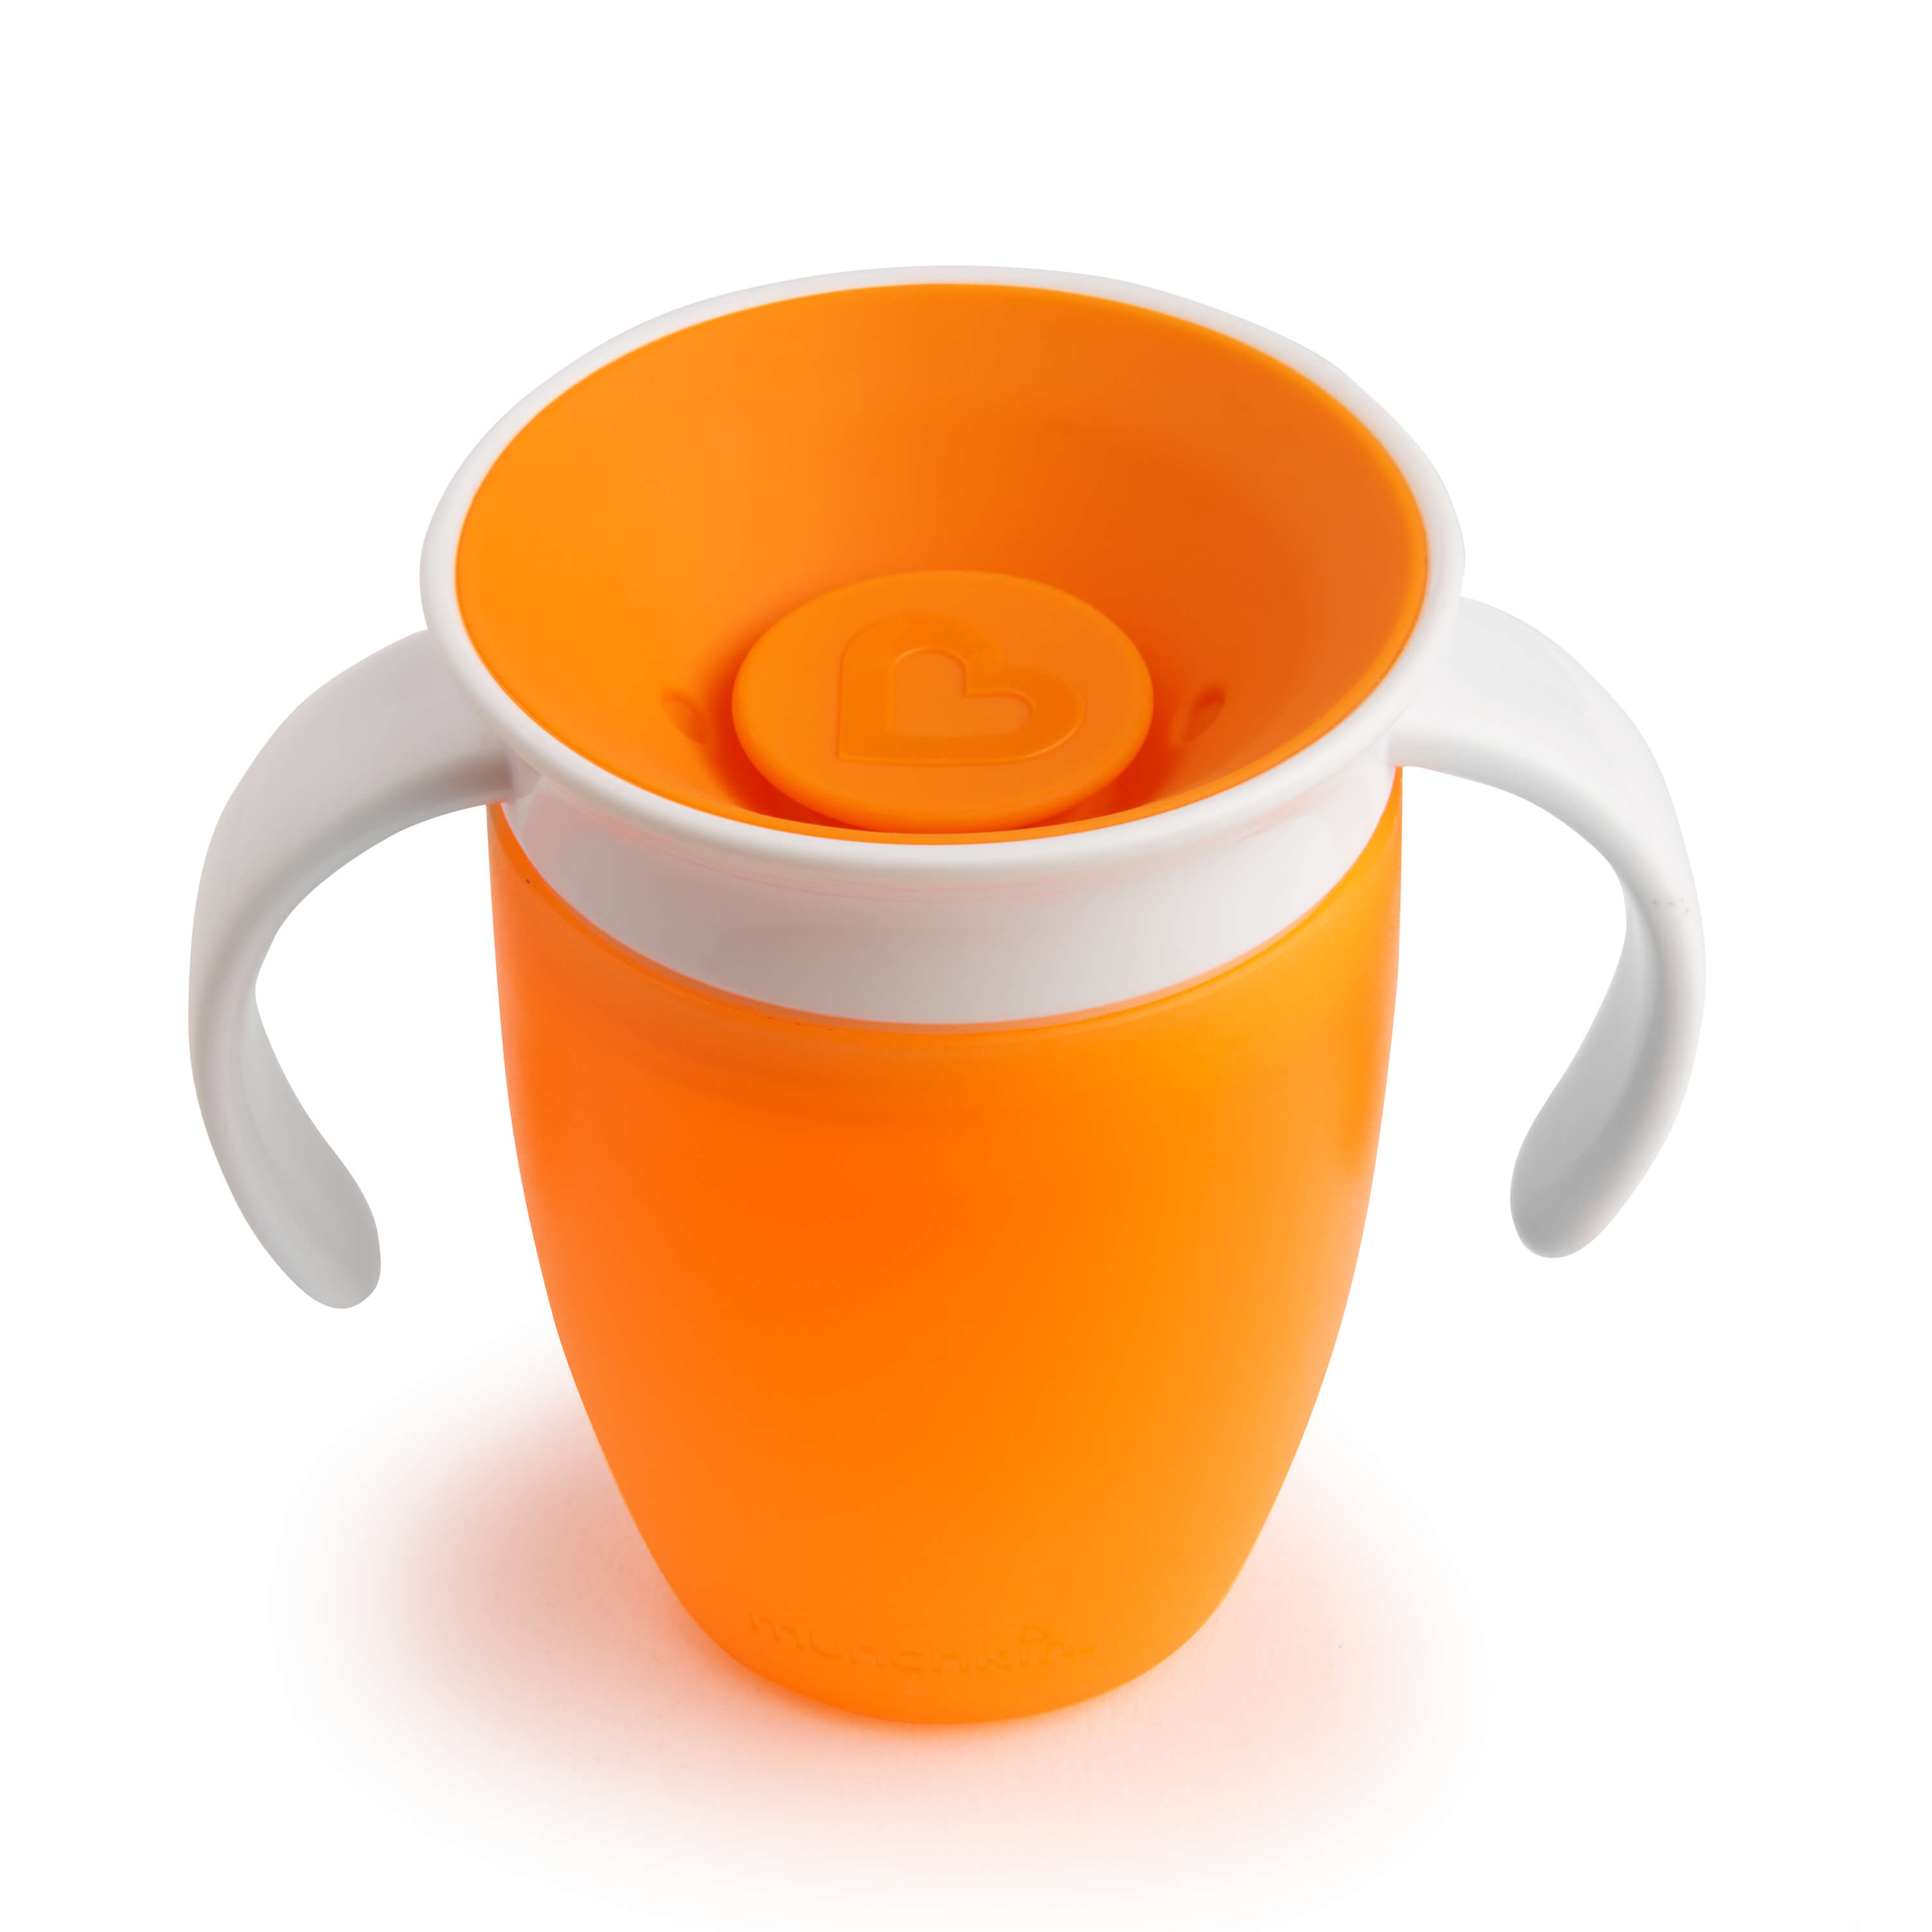 miracle-spoutless-trainer-cup-best-sippy-cup